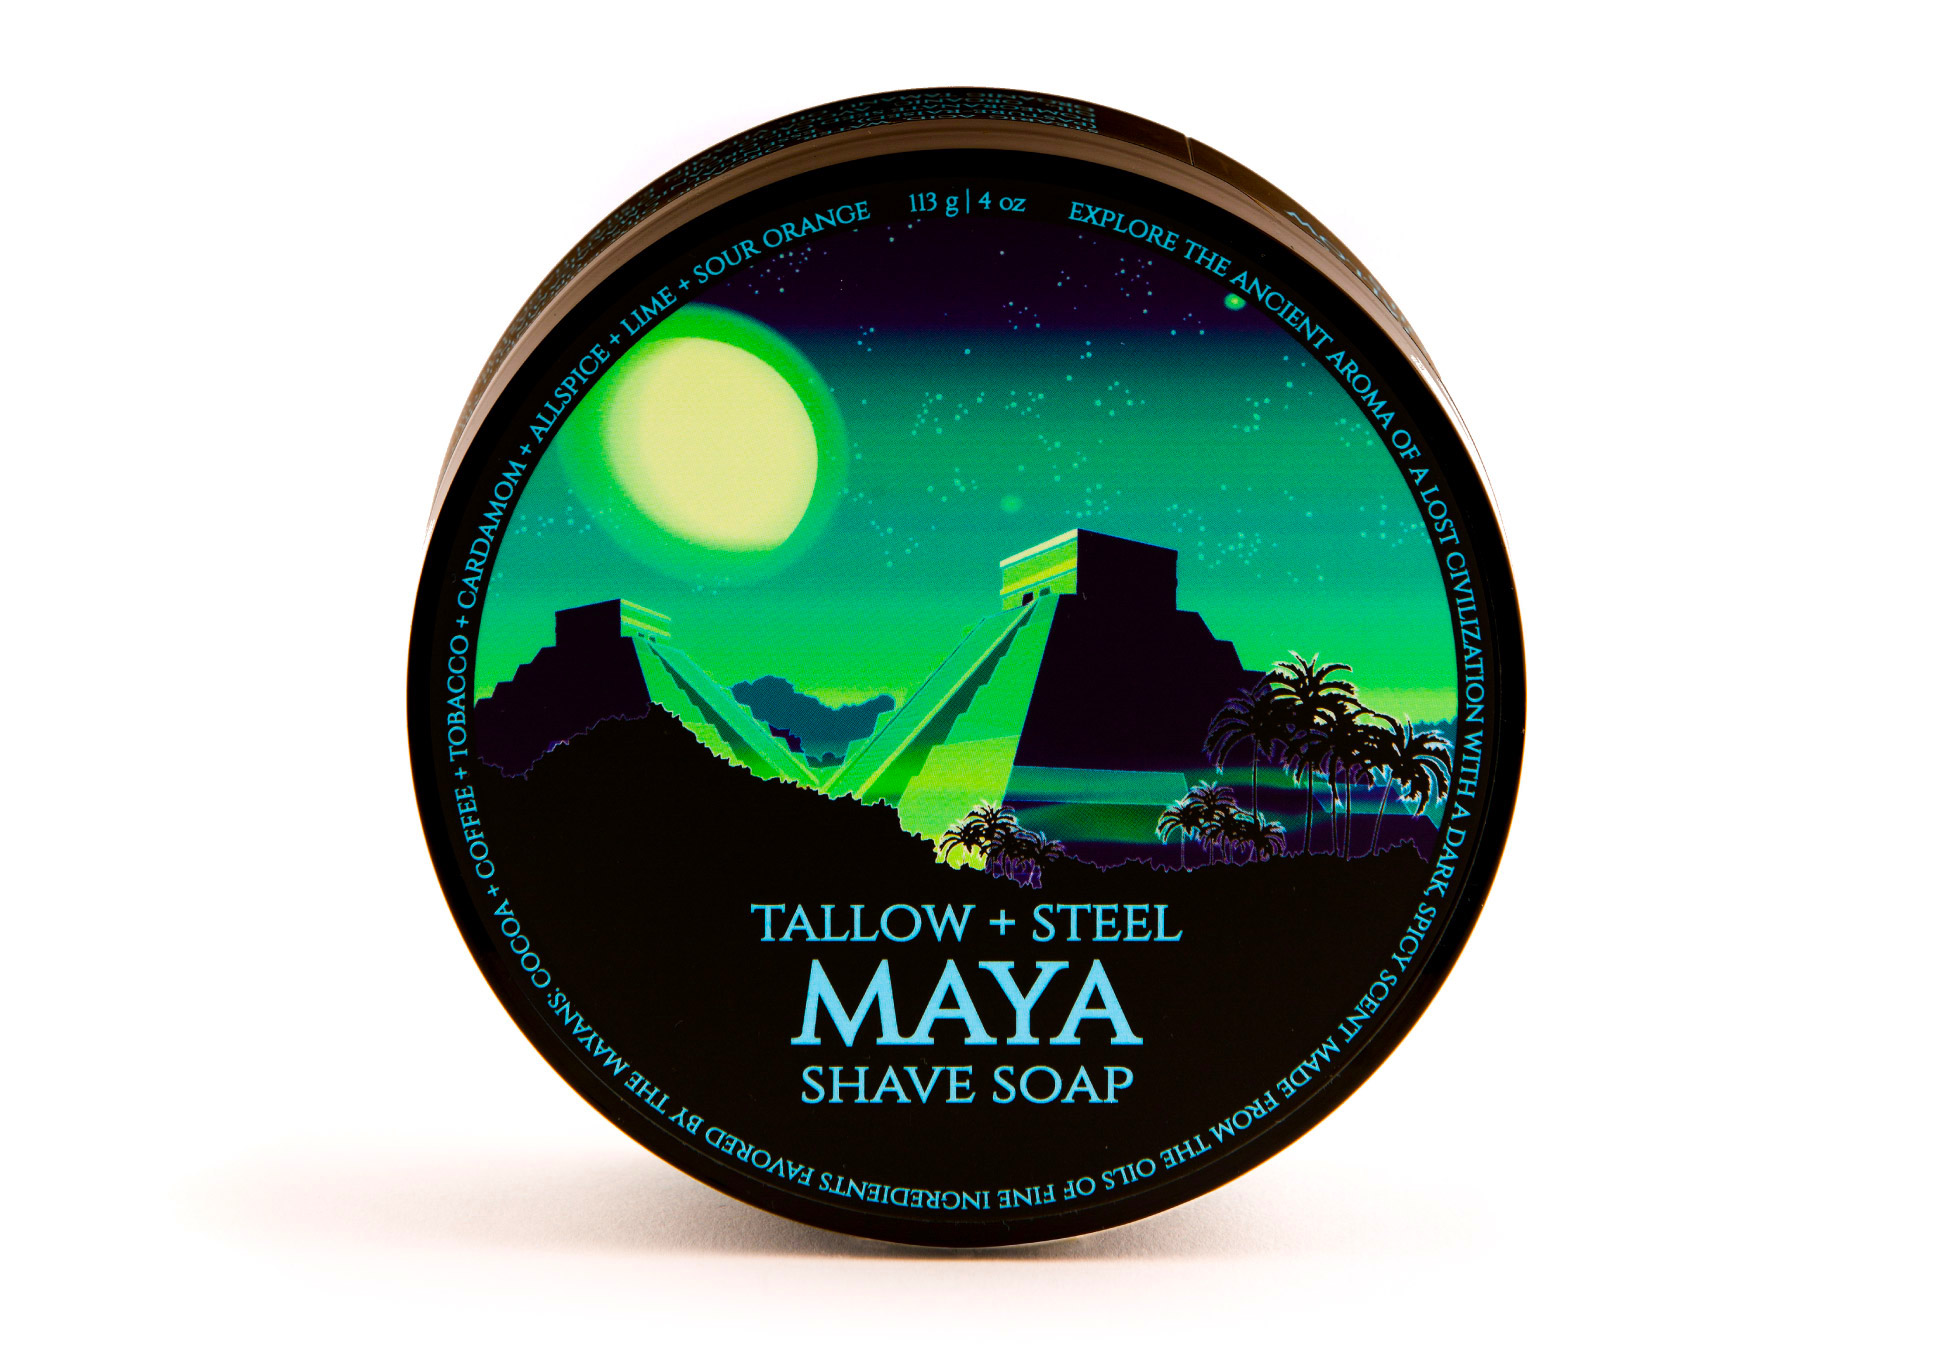 Tallow + Steel - Maya - Soap image